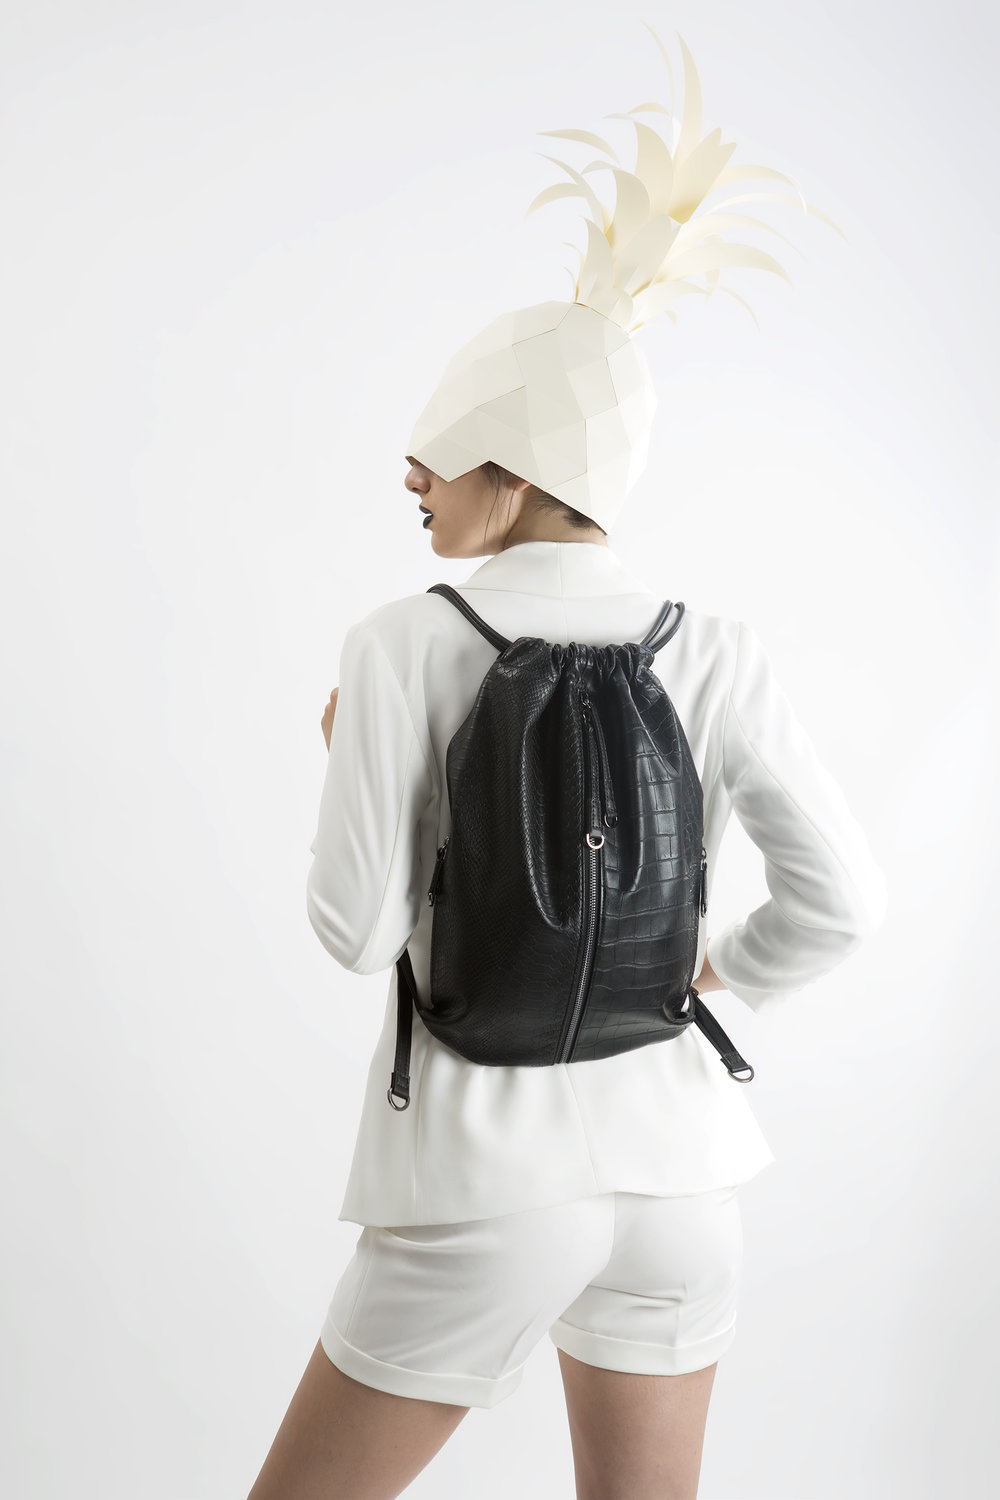 FruitenVeg-MISHI bag-never-leather-eco-croc-embossed-faux-leather-black-medium-luxury-backpack-nyc